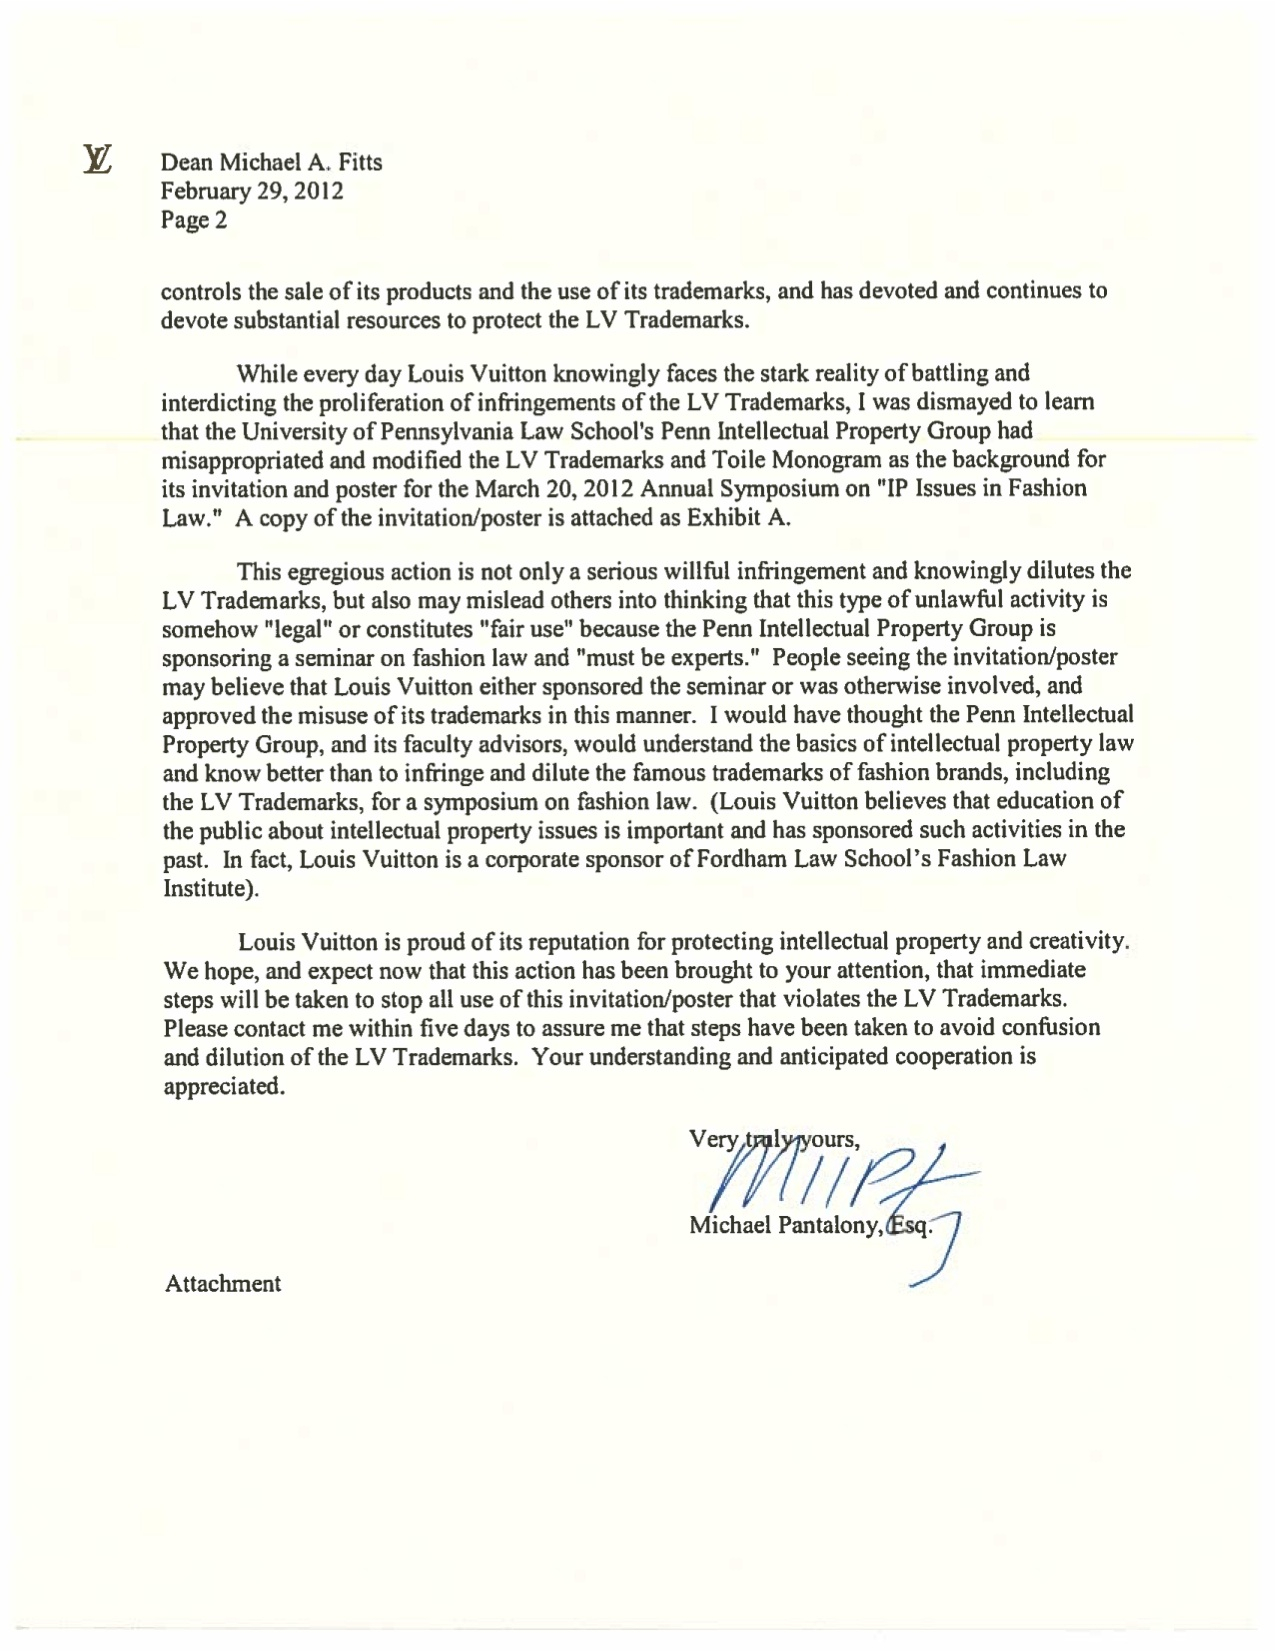 Cease and Desist Letter Template Intellectual Property - Intellectual Property Docket Specialist Cover Letters Intellectual